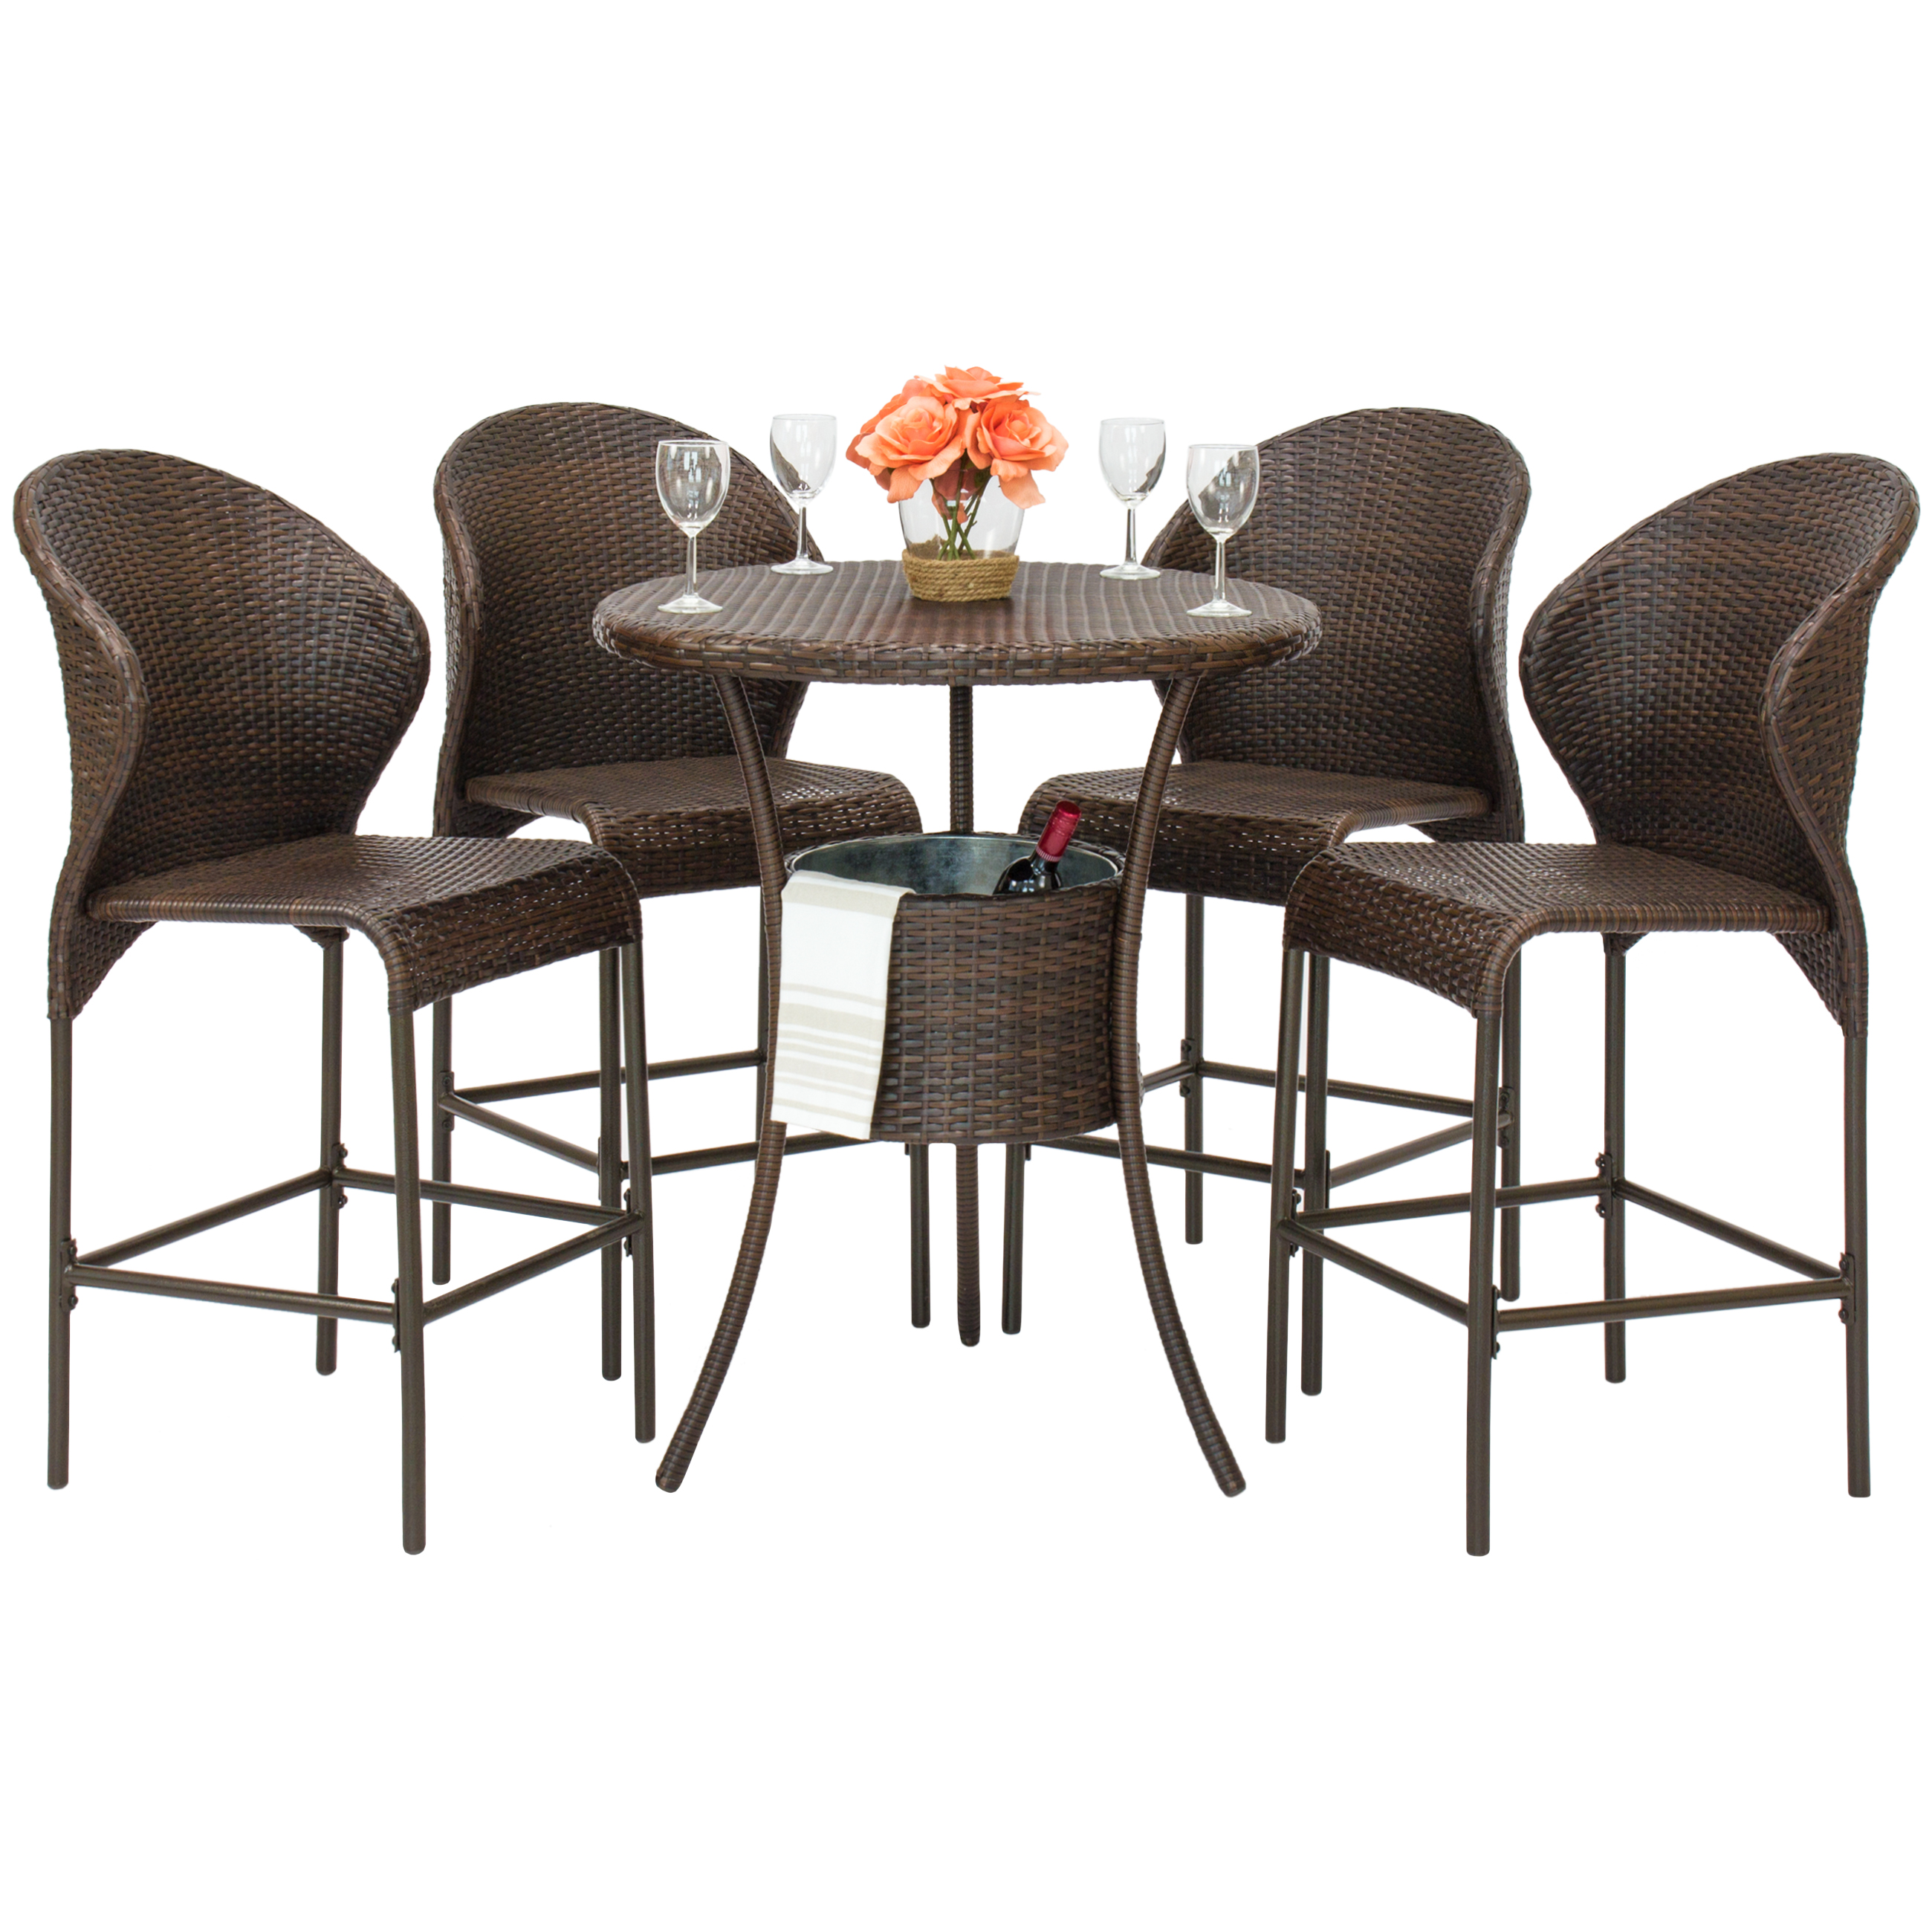 Best Choice Products 5-Piece Outdoor Patio Furniture Wicker Bistro Pub Table Set w  Ice Bucket Brown by